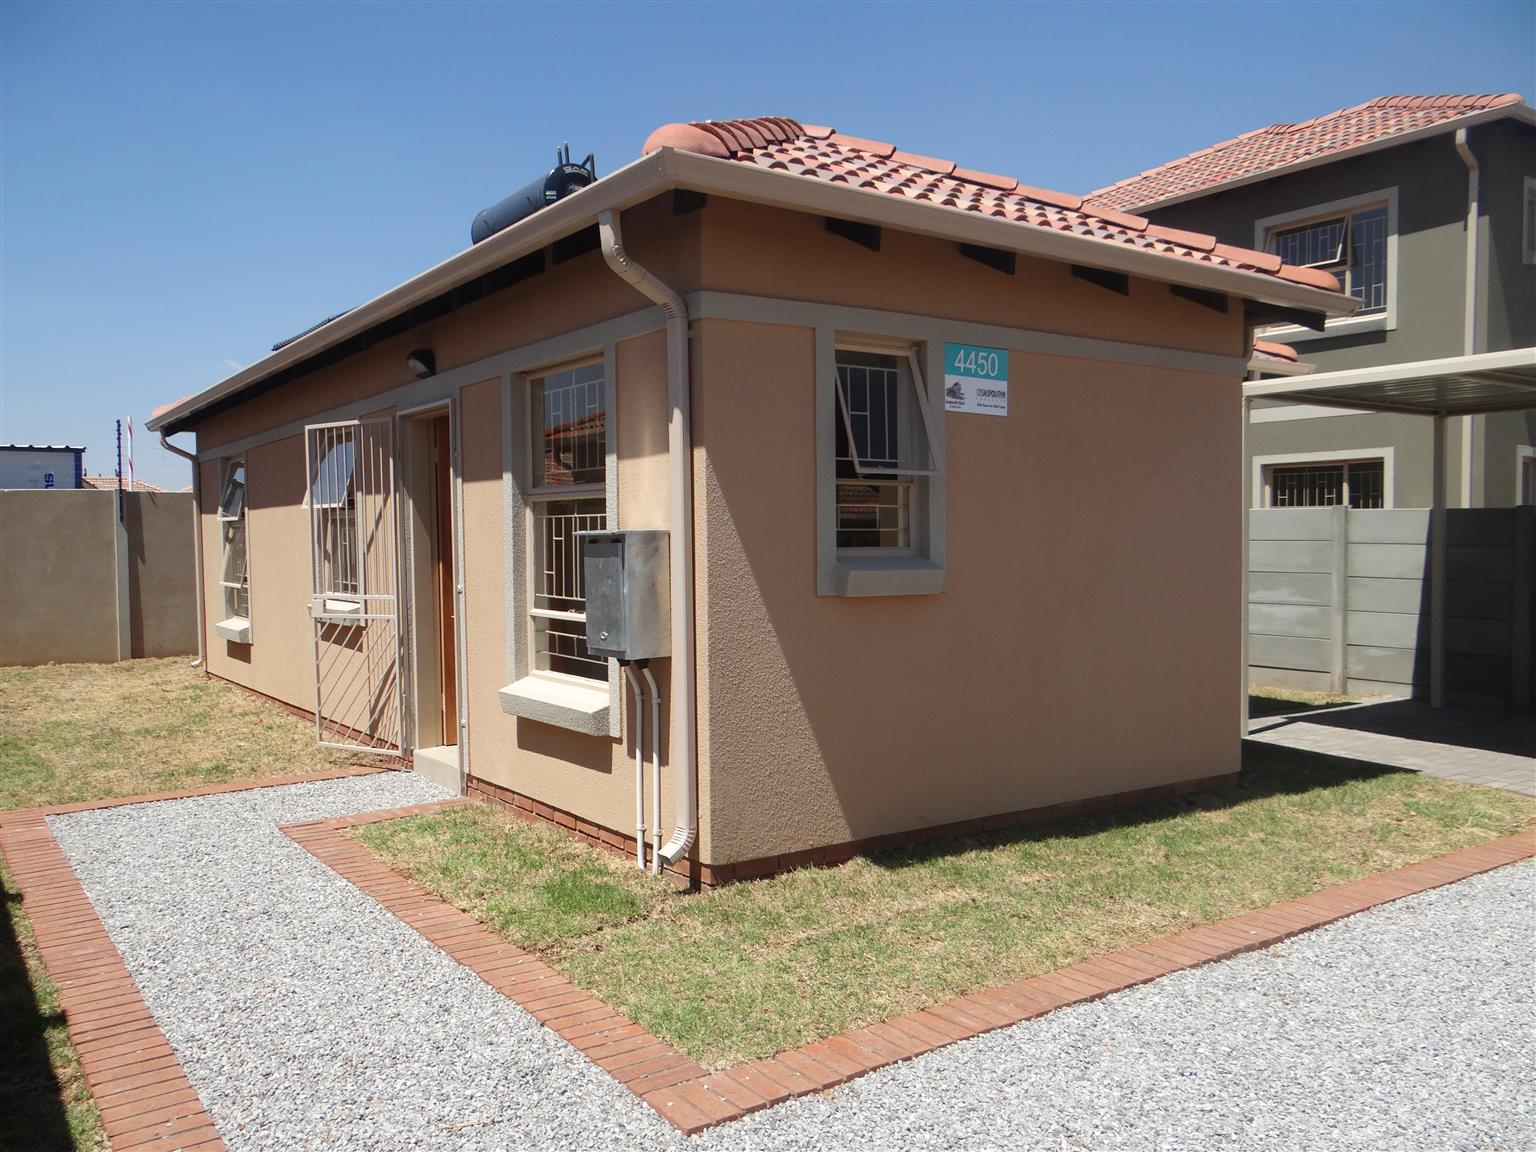 New low cost development houses for sale in protea glen soweto